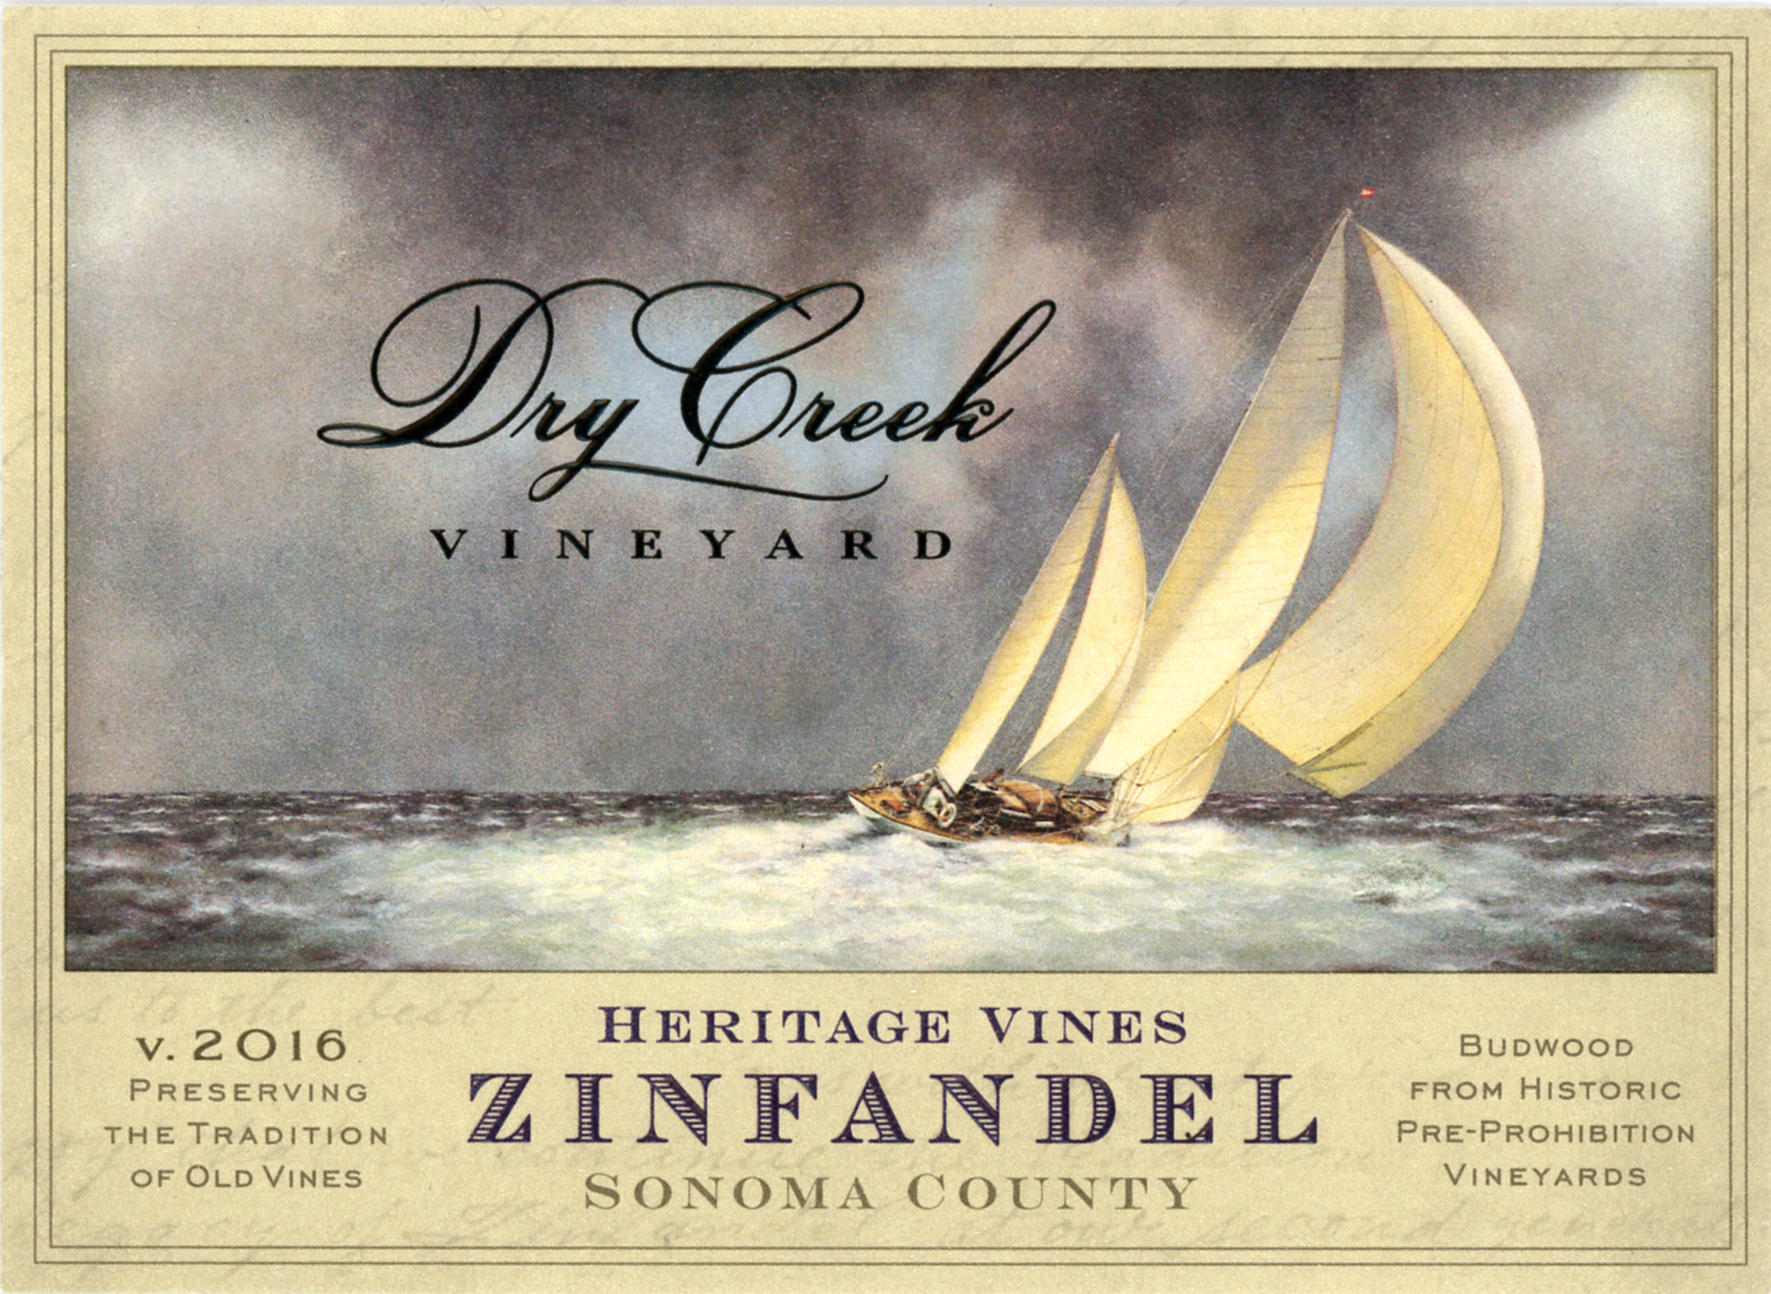 2016 Dry Creek Vineyard Zinfandel Heritage Vines